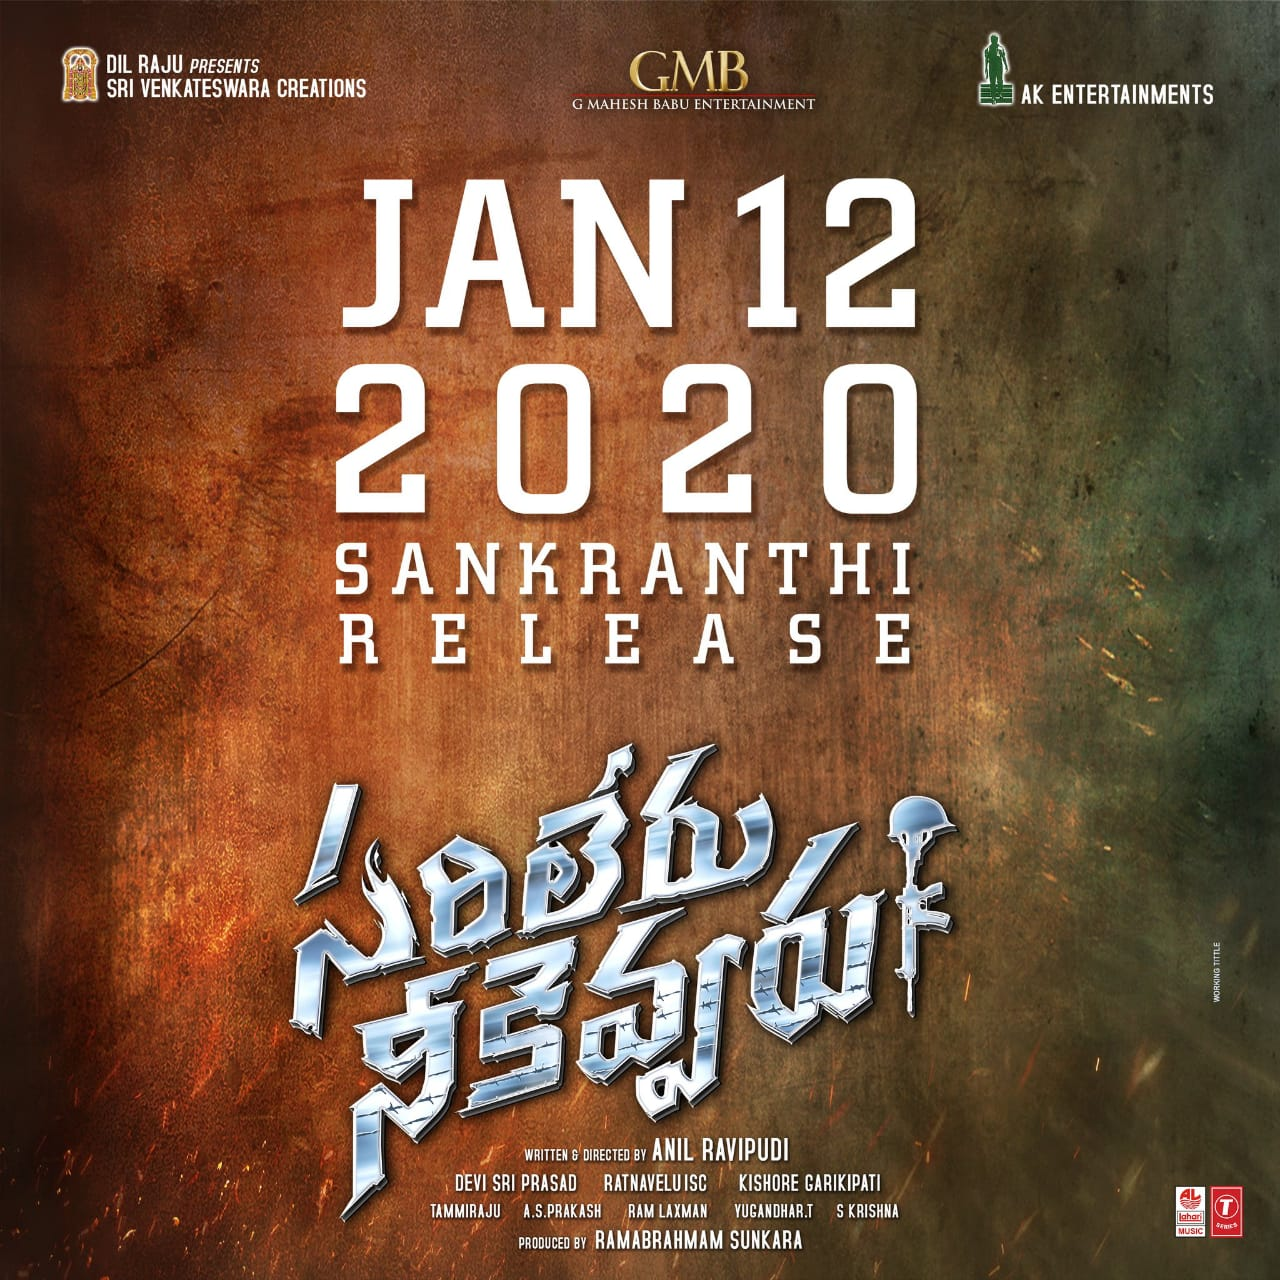 mahesh babu sarileru neekevvaru release on january 12th 2020 on the occassion of sankranthi,mahesh babu,mahesh sarileru neekevvaru realese date,sarileru neekevvaru realese date release on january 12th,sankranthi release,sarileru neekevvaru,sarileru neekevvaru kondareddy buruju,#SarileruNeekevvaru,#maheshbabu26,#MaheshBabu,Sarileru Neekevvaru Title Song,A Tribute To The Indian Army,Mahesh Babu,DSP,Anil Ravipudi,sarileru neekevvaru,sarileru neekevvaru teaser,sarileru neekevvaru trailer,sarileru neekevvaru first look,mahesh babu sarileru neekevvaru,sarileru neekevvaru movie songs,sarileru neekevvaru songs,sarileru neekevvaru the intro,sarileru neekevvaru movie teaser,sarileru neekevvaru title song,sarileru neekevvaru movie updates,sarileru neekevvaru mahesh babu,sarileru neekevvaru movie title song update,Mahesh babu,mahesh babu twitter,mahesh babu instagram,sarileru neekevvaru,sarileru neekevvaru mahesh babu charecter as major ajay krishna,sarileru neekevvaru,sarileru neekevvaru twitter,mahesh babu twitter,mahesh babu instagram,sarileru neekevvaru satellite rights,maharshi satellite rights,maharshi movie collections,sarileru neekevvaru satellite rights sold for huge price,sarileru neekevvaru trailer,sarileru neekevvaru,sarileru neekevvaru gemini tv,sarileru neekevvaru gemini tv satellite rights,sarileru neekevvaru launch,sarileru neekevvaru first look,saaho satellite rights,#sarileru neekevvaru,mahesh babu sarileru neekevvaru,saaho movie rights,saaho theatrical rights,sahoo movie theatrical rights,prabhas saaho theatrical rights,telugu cinema,sarileru neekevvaru,mahesh babu,sarileru neekevvaru movie,mahesh babu sarileru neekevvaru,mahesh babu new movie,sarileru neekevvaru first look,sarileru neekevvaru mahesh babu,sarileru neekevvaru teaser,sarileru neekevvaru movie updates,sarileru neekevvaru movie launch,sarileru neekevvaru launch,sarileru neekevvaru trailer,mahesh babu anil ravipudi movie,sarileru neekevvaru movie first look,mahesh babu movies,మహేష్ బాబు,మహేష్ బాబు సరిలేరు నీకెవ్వరు,సరిలేరు నీకెవ్వరు లో మహేష్ బాబు అజయ్ కృష్ణ,మేజర్ అజయ్ కృష్ణ మహేష్ బాబు సరిలేరు నీకెవ్వరు,మహేష్ బాబు జెమిని టీవీ,మహేష్ బాబు మహర్షి కలెక్షన్స్,సరిలేరు నీకెవ్వరు శాటిలైట్ రైట్స్,తెలుగు సినిమా,టైటిల్ సాంగ్,సరిలేరు నీకెవ్వరు టైటిల్ సాంగ్,సరిలేరు నీకెవ్వరు సైనికుడి సాంగ్ విడుదల,కొండారెడ్డి బురుజు,కర్నూలు కొండారెడ్డి బురుజు,మహేష్ బాబు కొండారెడ్డి బురుజు సరిలేరు నీకెవ్వరు,జనవరి 12 సరిలేరు నీకెవ్వరు,సరిలేరు నీకెవ్వరు రిలీజ్ డేట్,సరిలేరు నీకెవ్వరు విడుదల తేది ఖరారు,